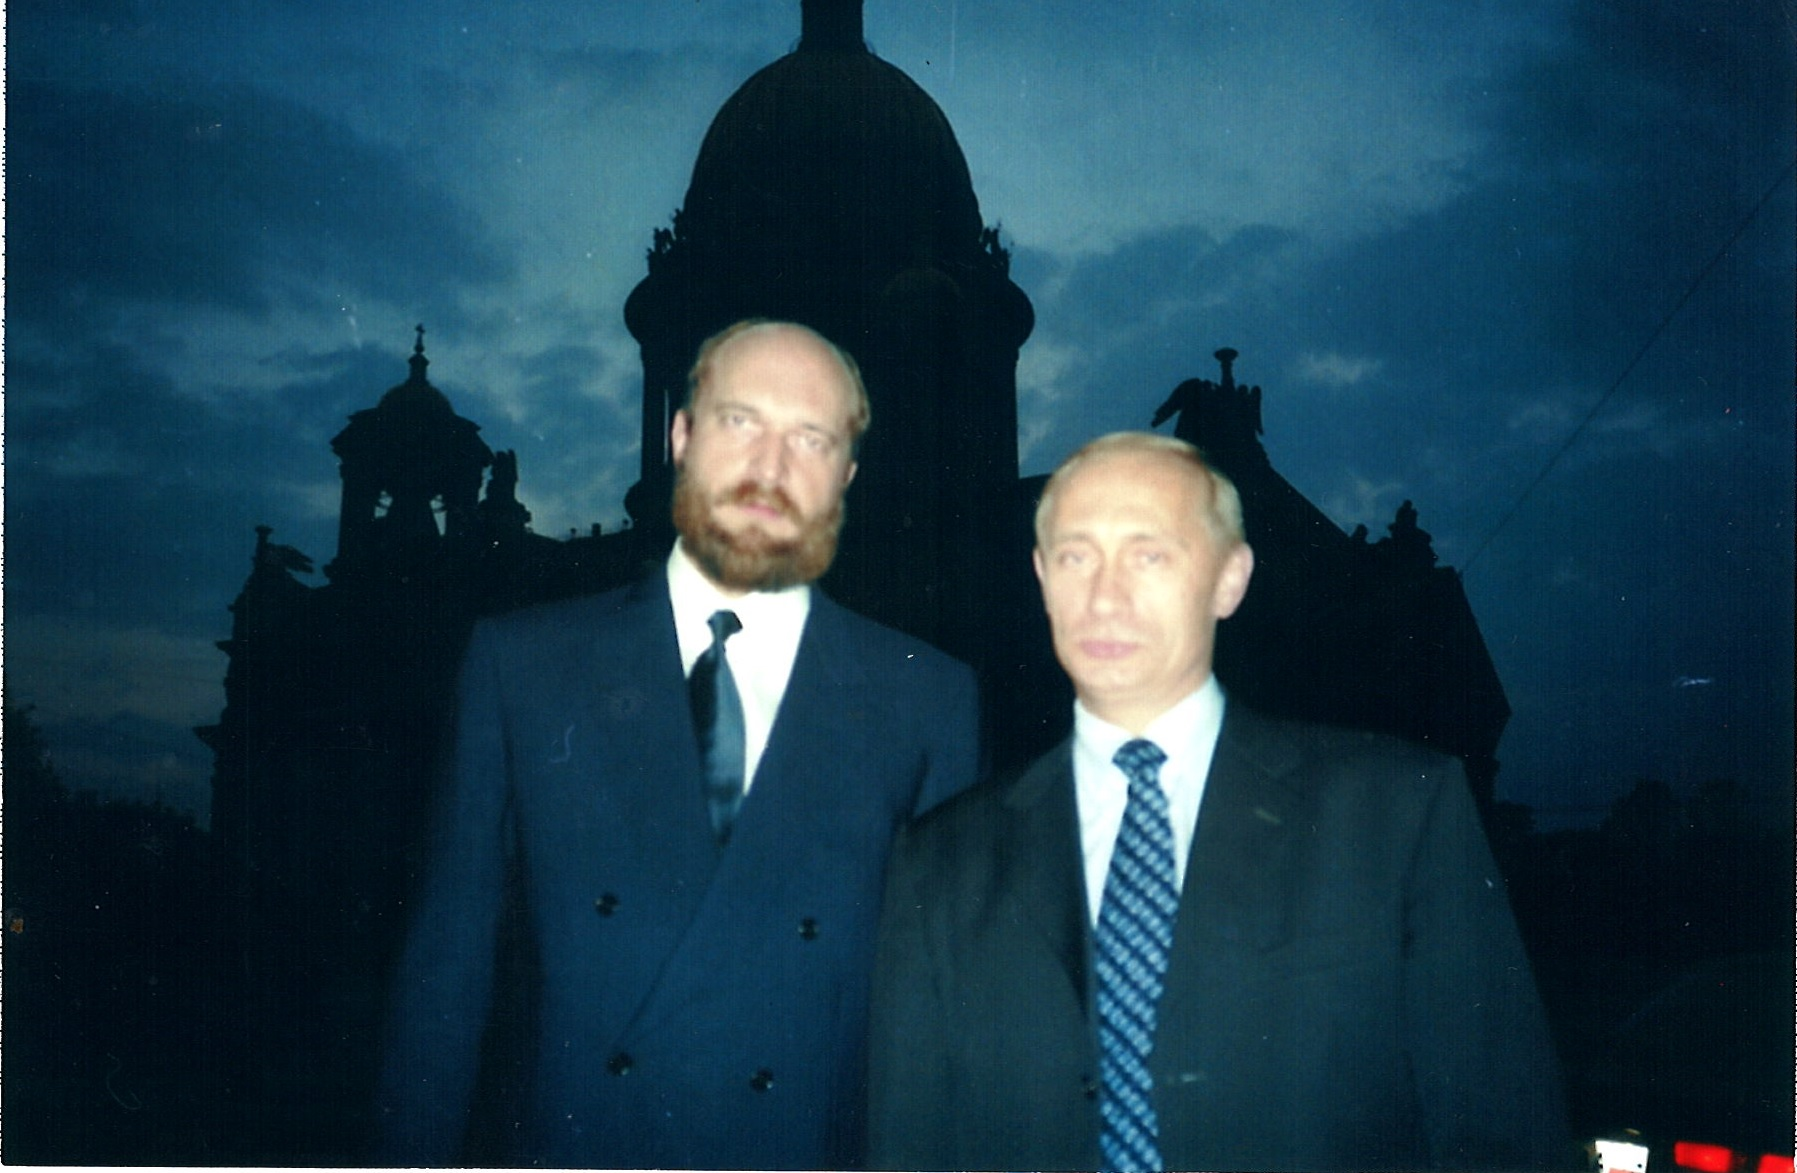 With Putin on ancestral homeland